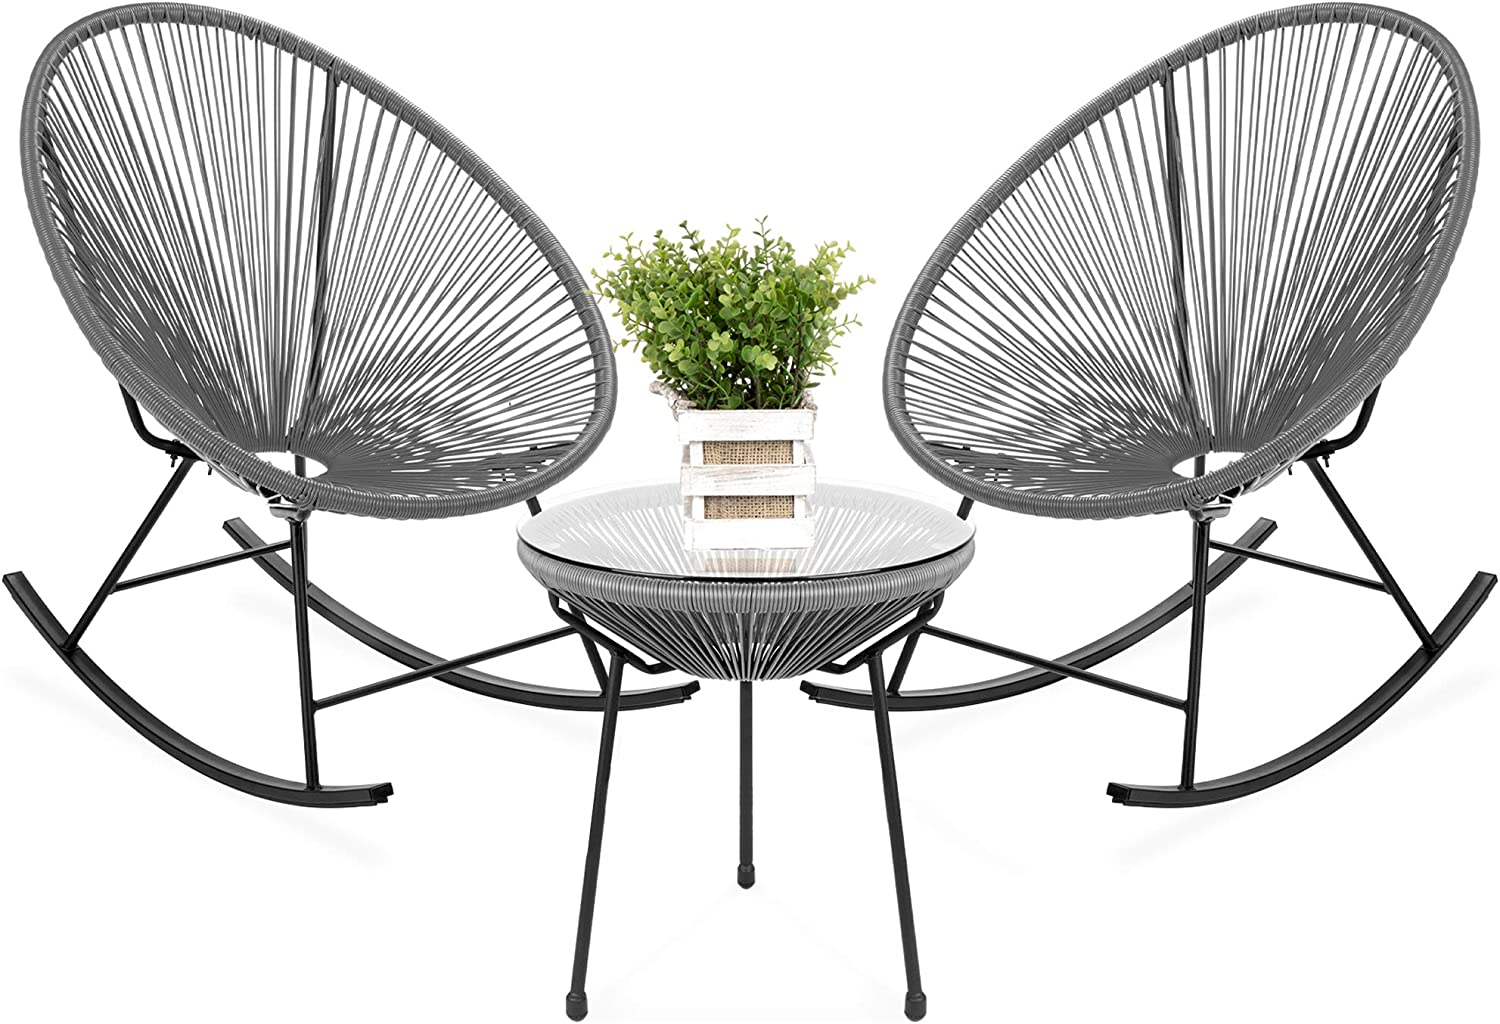 Amazon Com Best Choice Products 3 Piece Outdoor Acapulco All Weather Woven Rope Patio Conversation Bistro Set W Glass Top Table And 2 Rocking Chairs Gray Garden Outdoor